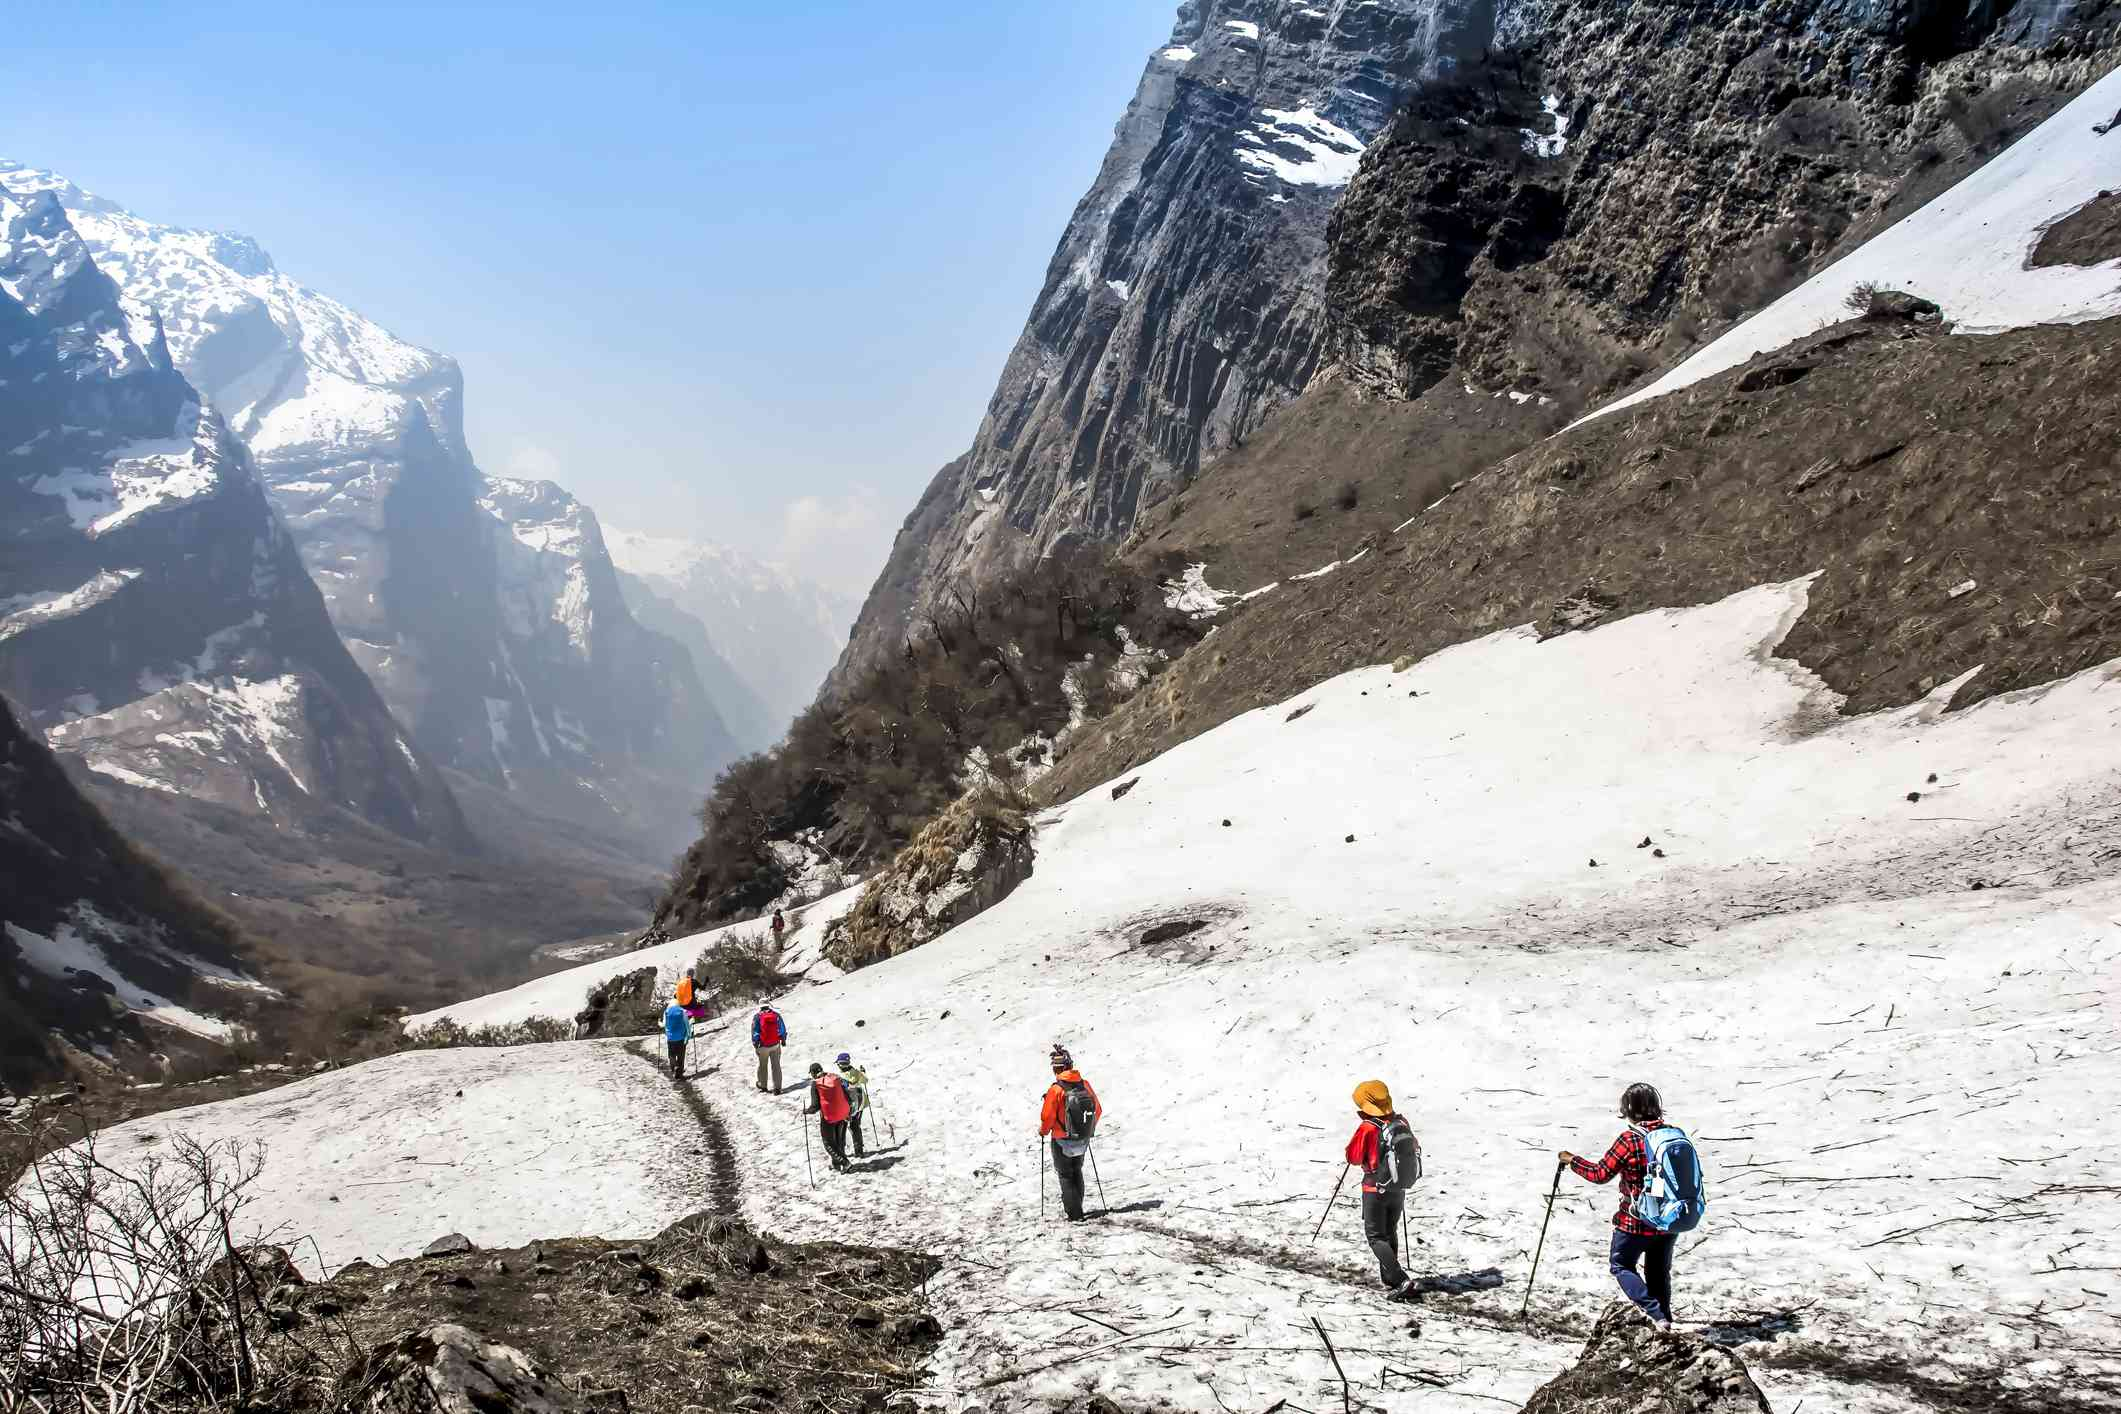 trekkers with poles walking through snow to a deep valley with snow-capped mountains